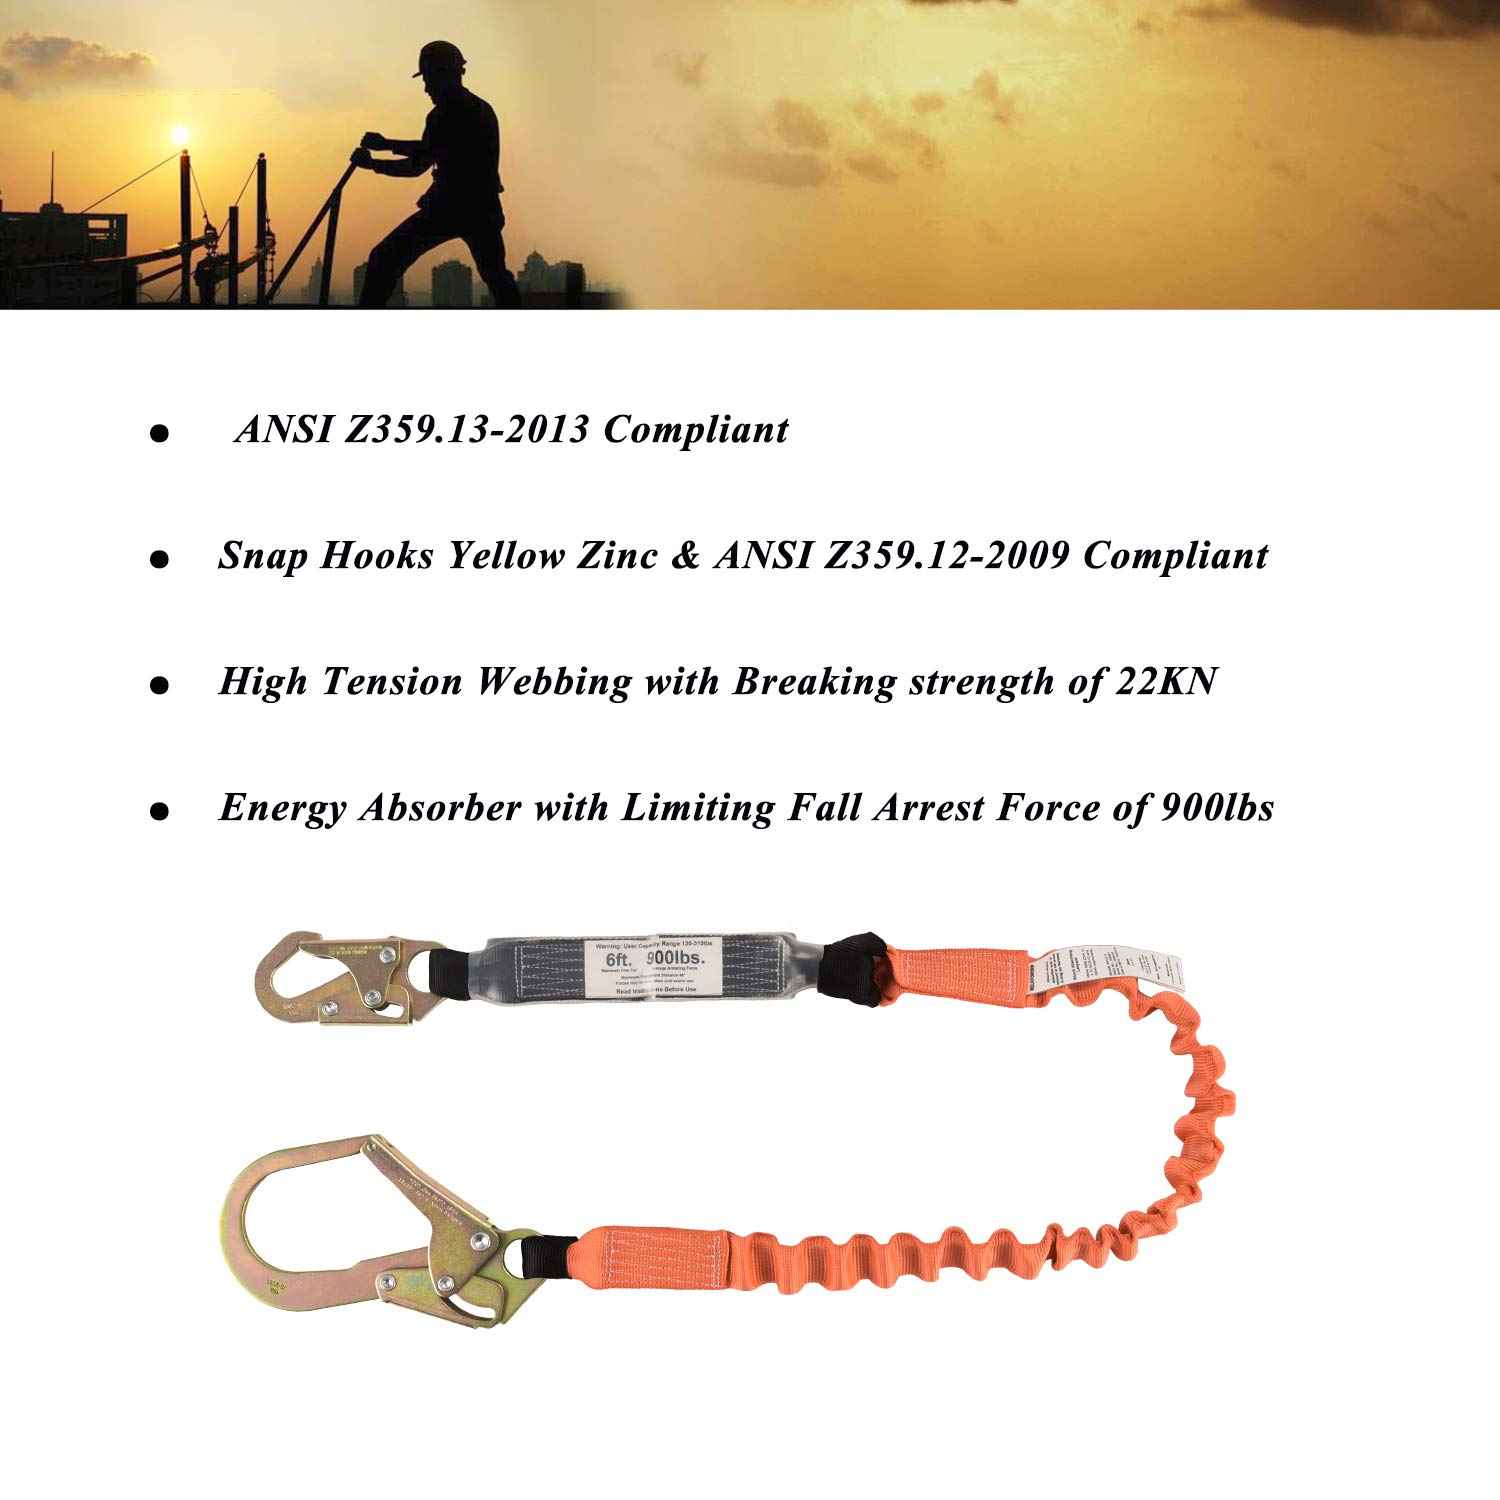 WELKFORDER Single Leg 6-Foot Fall Protection for Construction Shock Absorber Stretch Safety Lanyard with Snap & Rebar Hook Connectors ANSI Z359.13-2013 Complaint by WELKFORDER (Image #4)